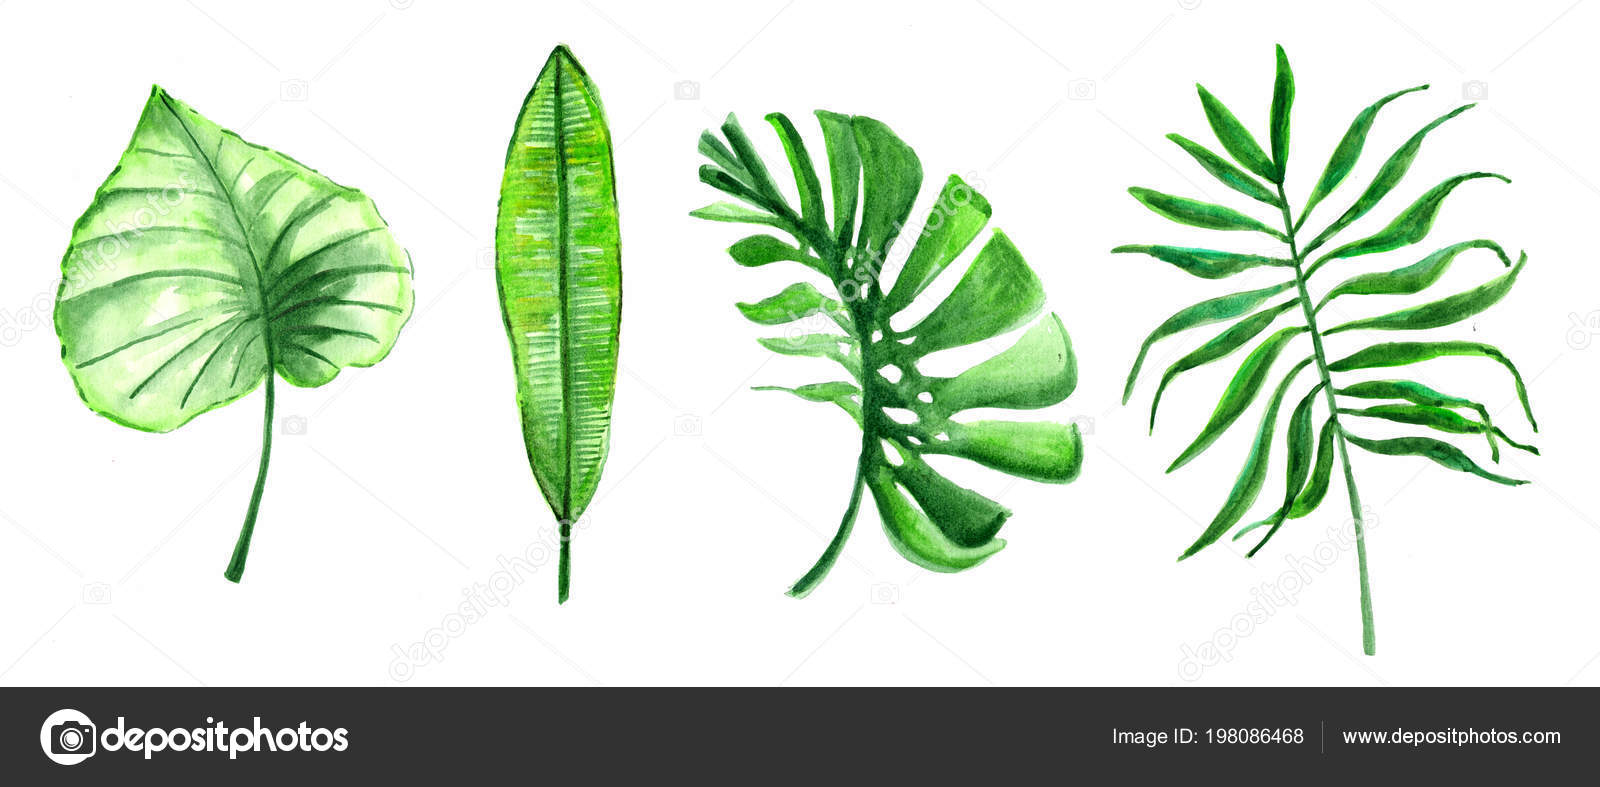 Watercolor Drawing Tropical Leaves Collection Stock Photo C Lyalya Savushkina Bk Ru 198086468 Learn how to draw tropical leaf pictures using these outlines or print just for coloring. https depositphotos com 198086468 stock photo watercolor drawing tropical leaves collection html